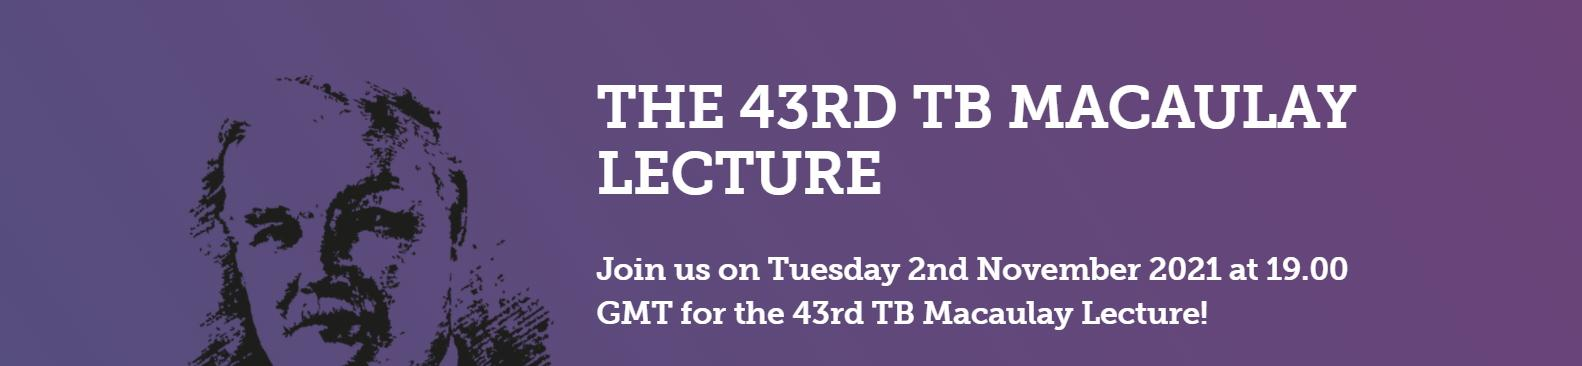 The 43rd TB Macaulay Lecture will take place on 2nd November 2021